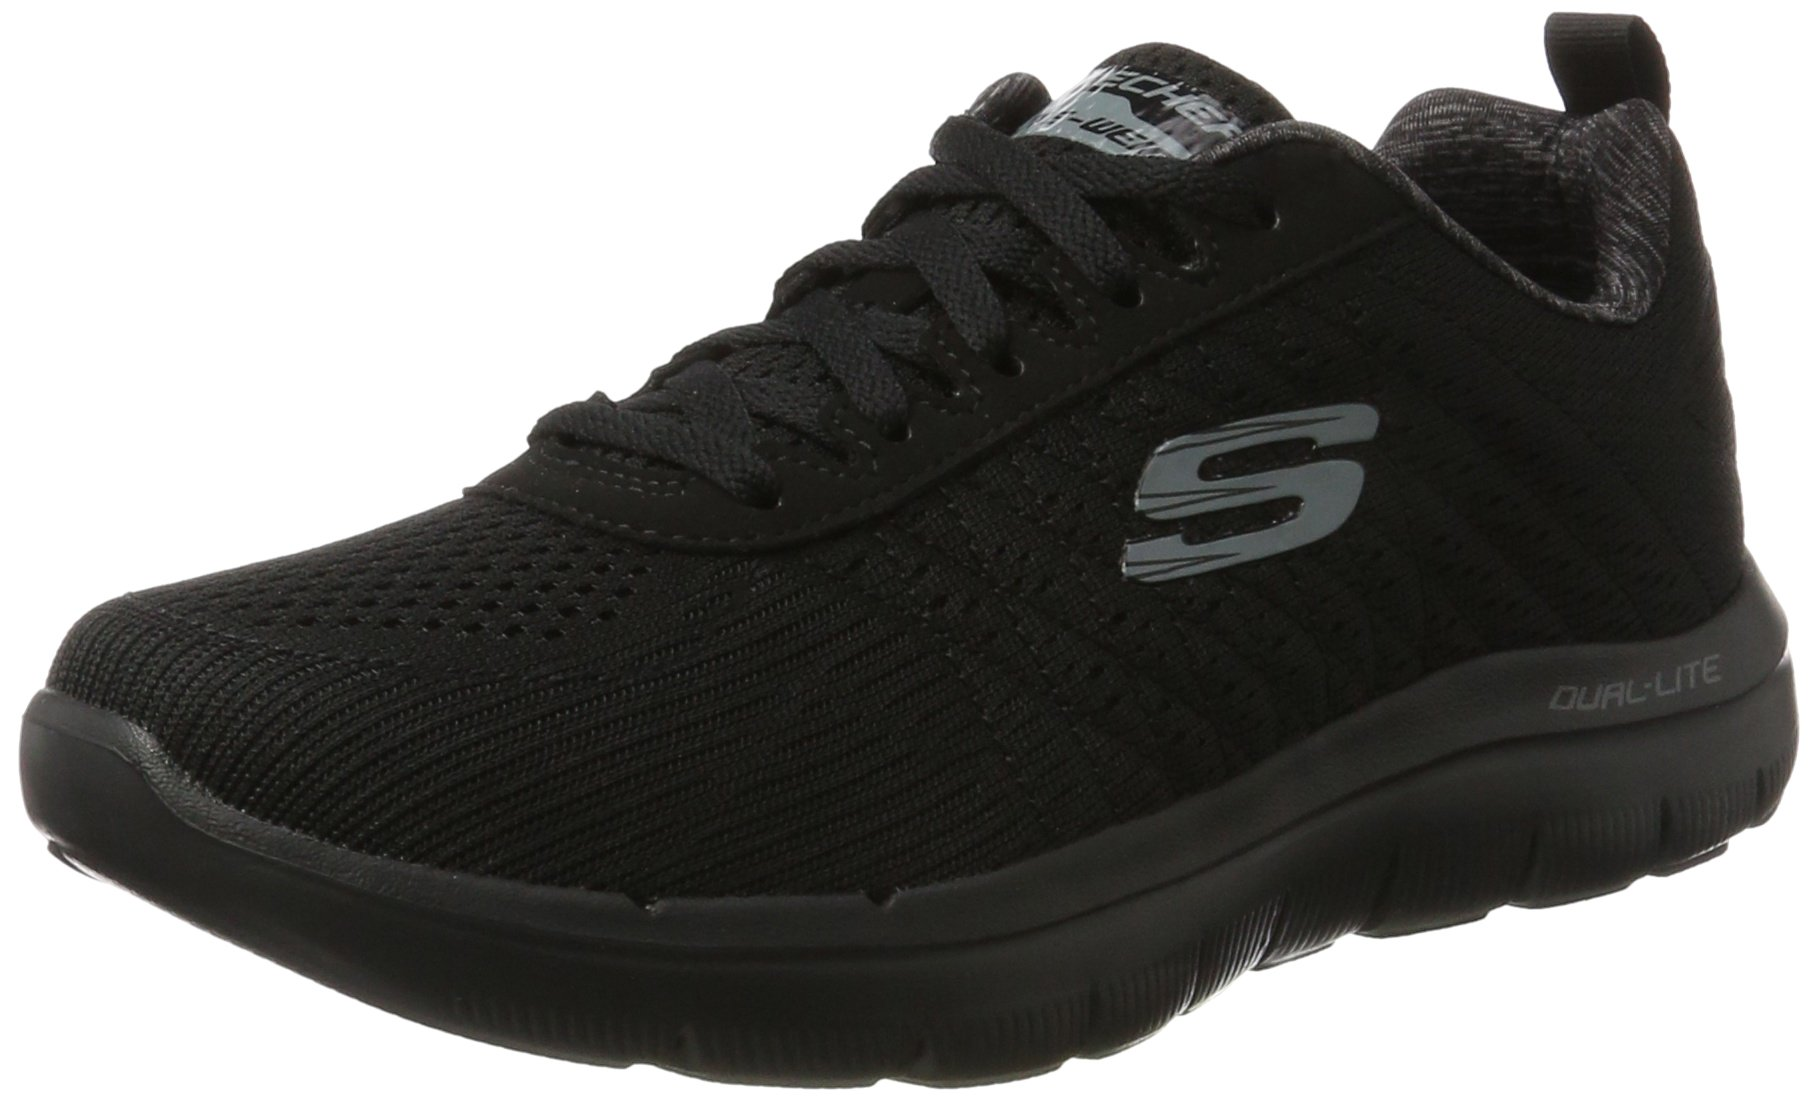 Skechers Sport Men's Flex Advantage 2.0 The Happs Oxford,Black,10 M US